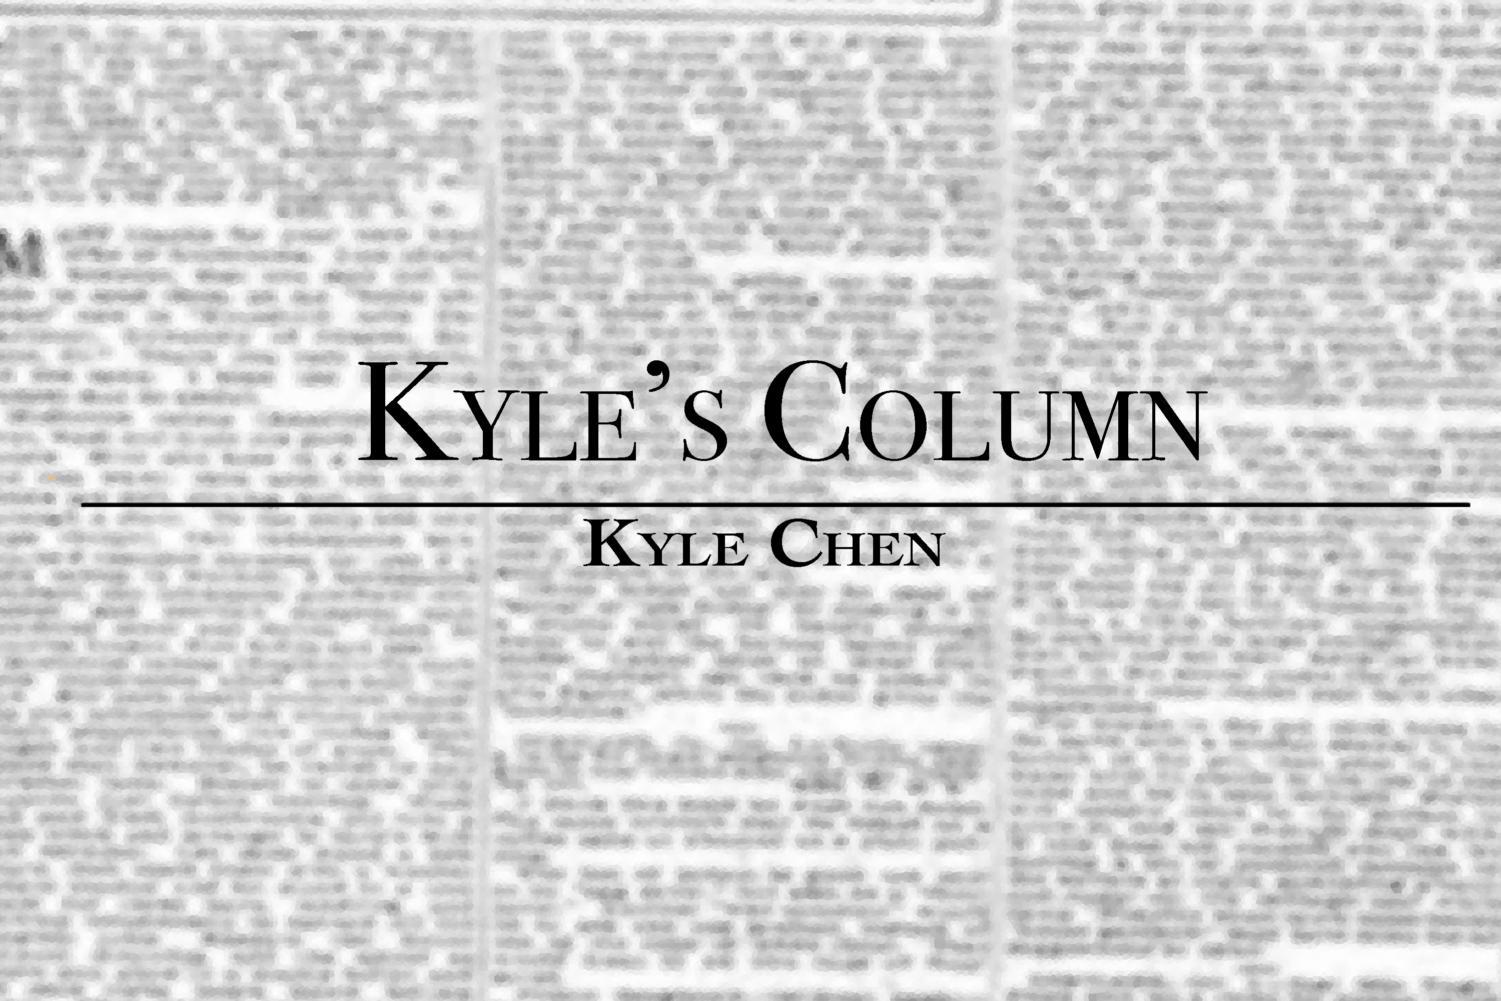 In the latest installment of Kyle's Column, WSPN's Opinions Editor Kyle Chen reflects upon the marvels of growing up.